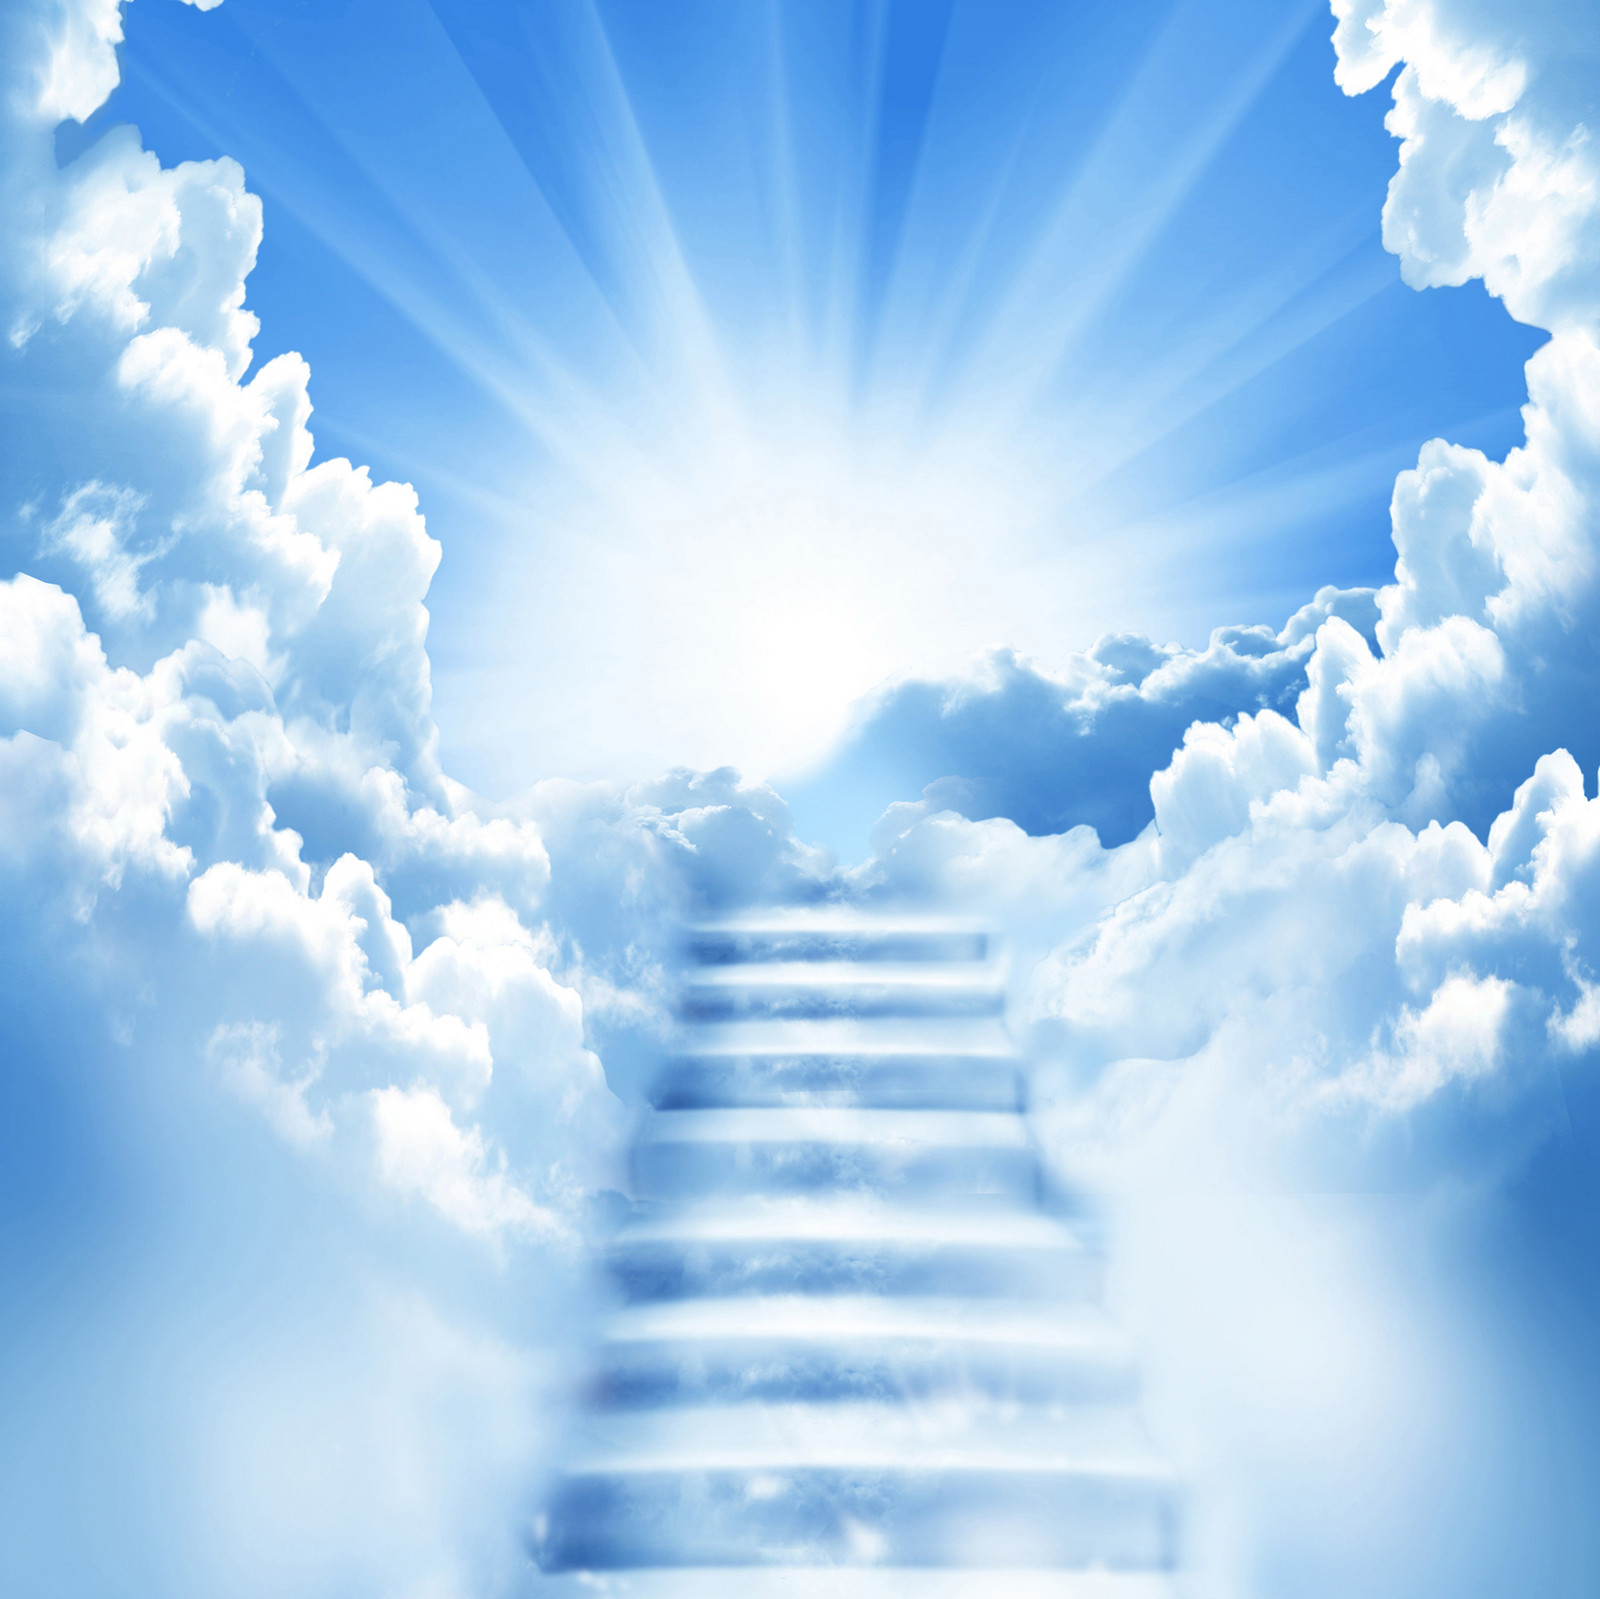 77] Funeral Background Pictures on WallpaperSafari 1600x1599